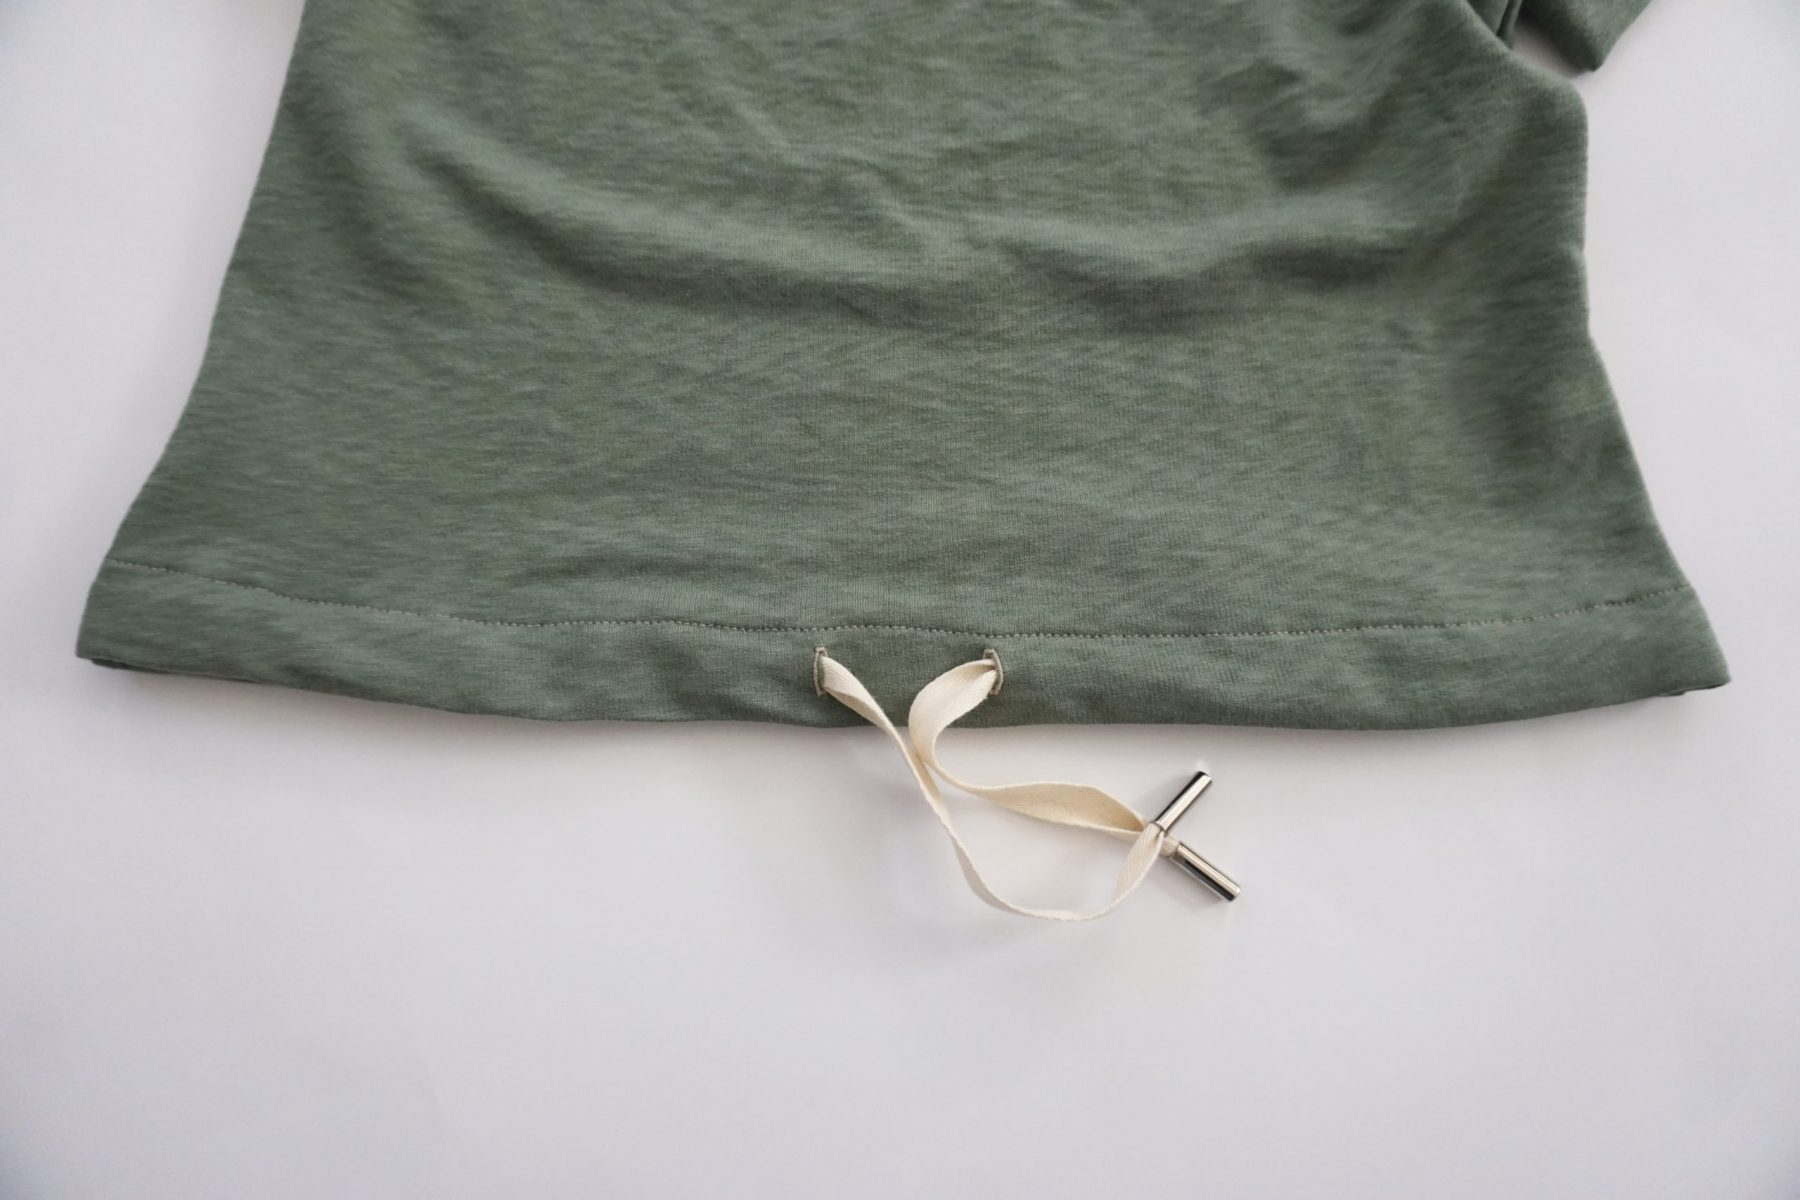 Thread your drawstring through your buttonholes and you're done!